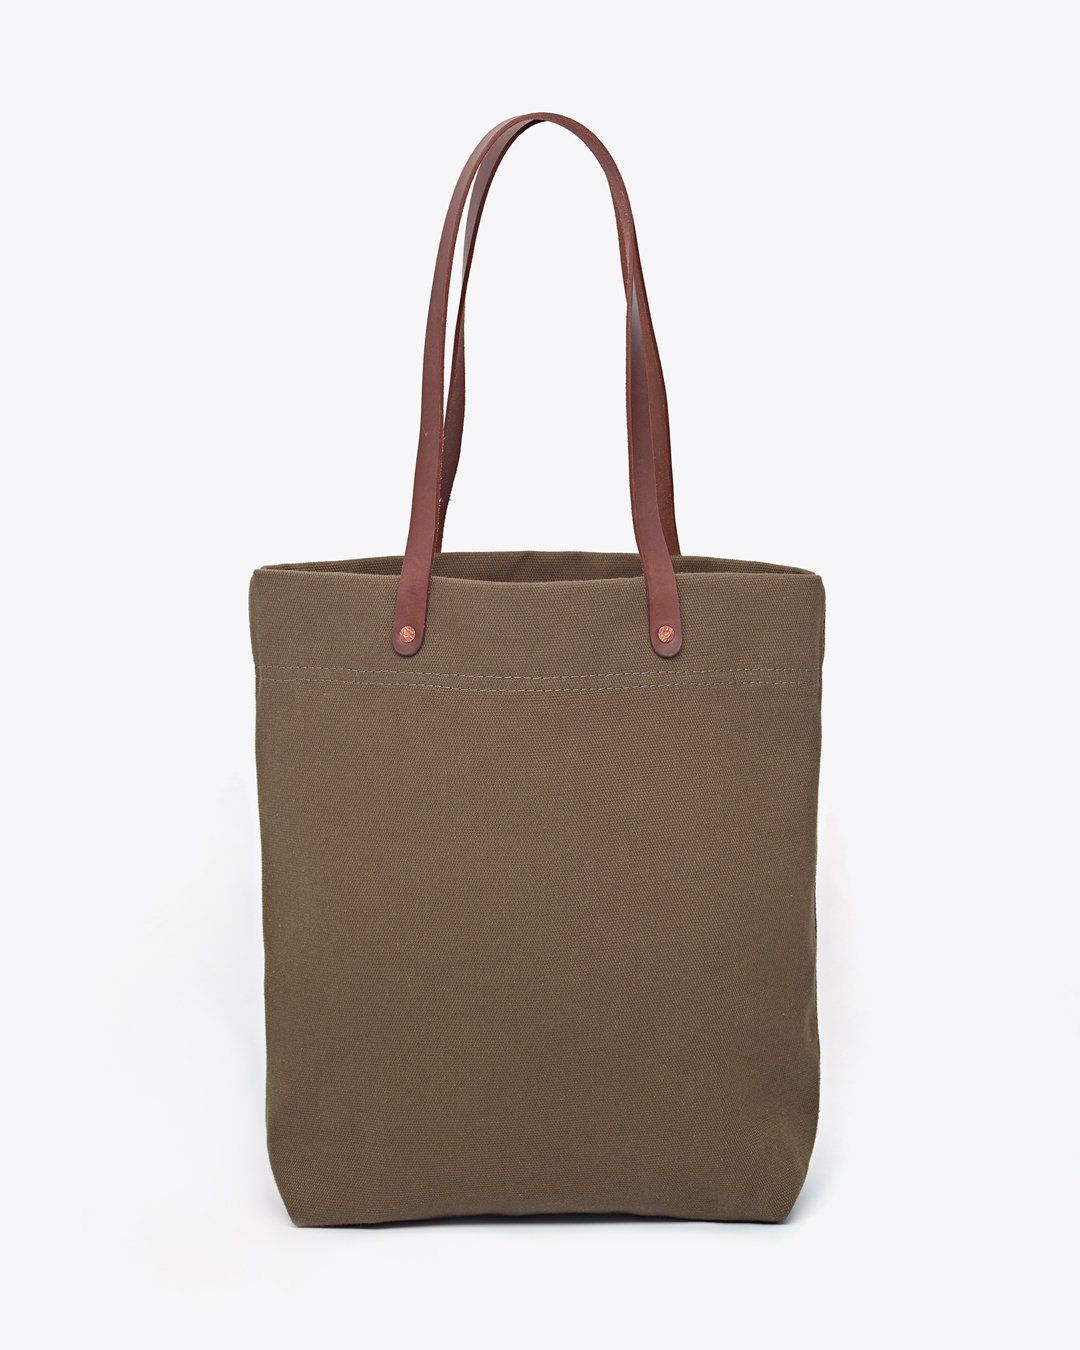 Nisolo Canvas Tote Olive Green Canvas Bag Nisolo